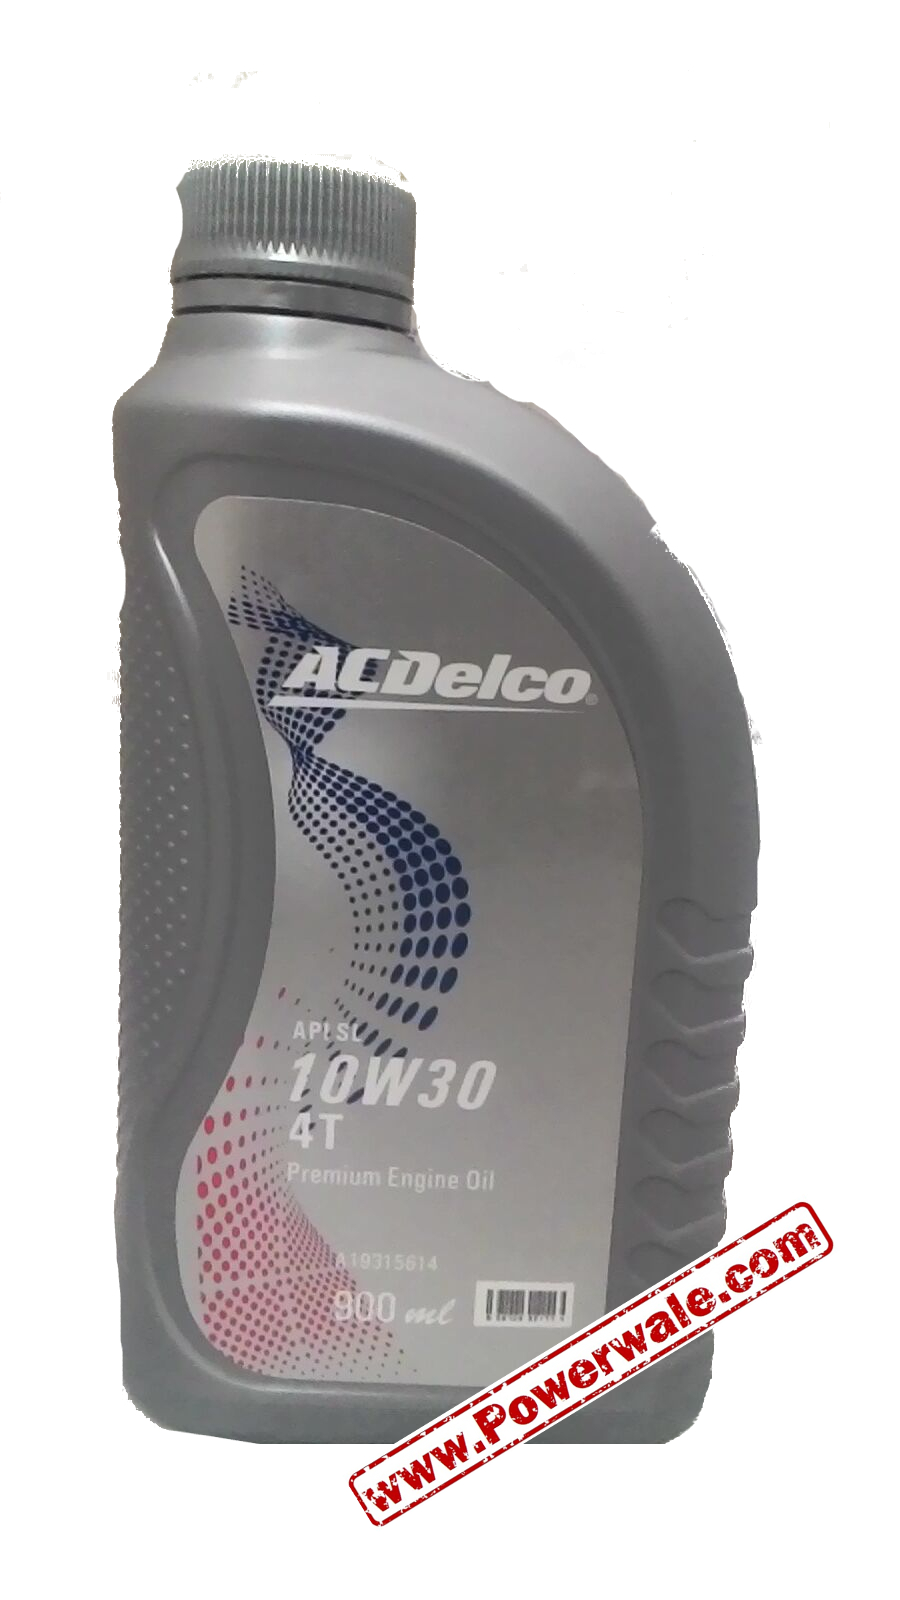 ACDelco 4T 10W30 Engine Oil for 4T Bikes